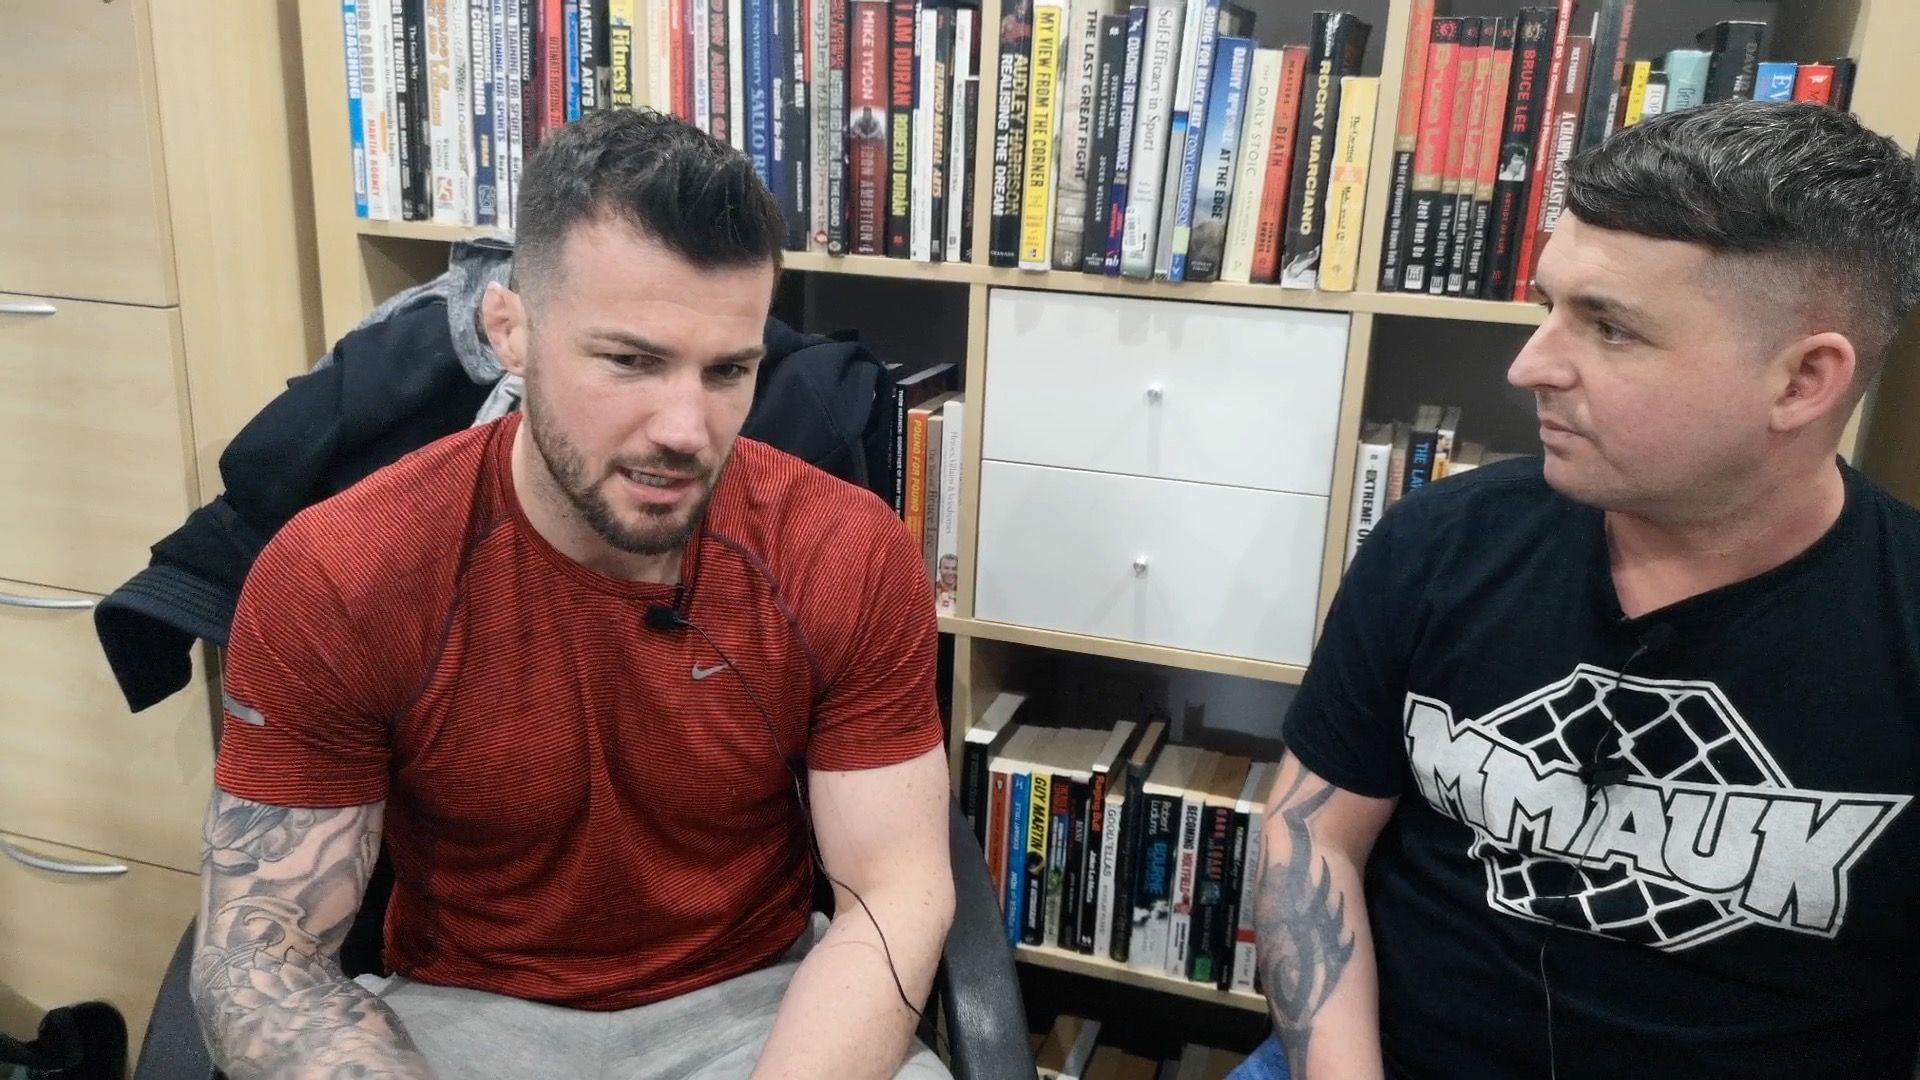 Interview with Lee 'Jaggy' Johnstone about his upcoming fight at On Top 22